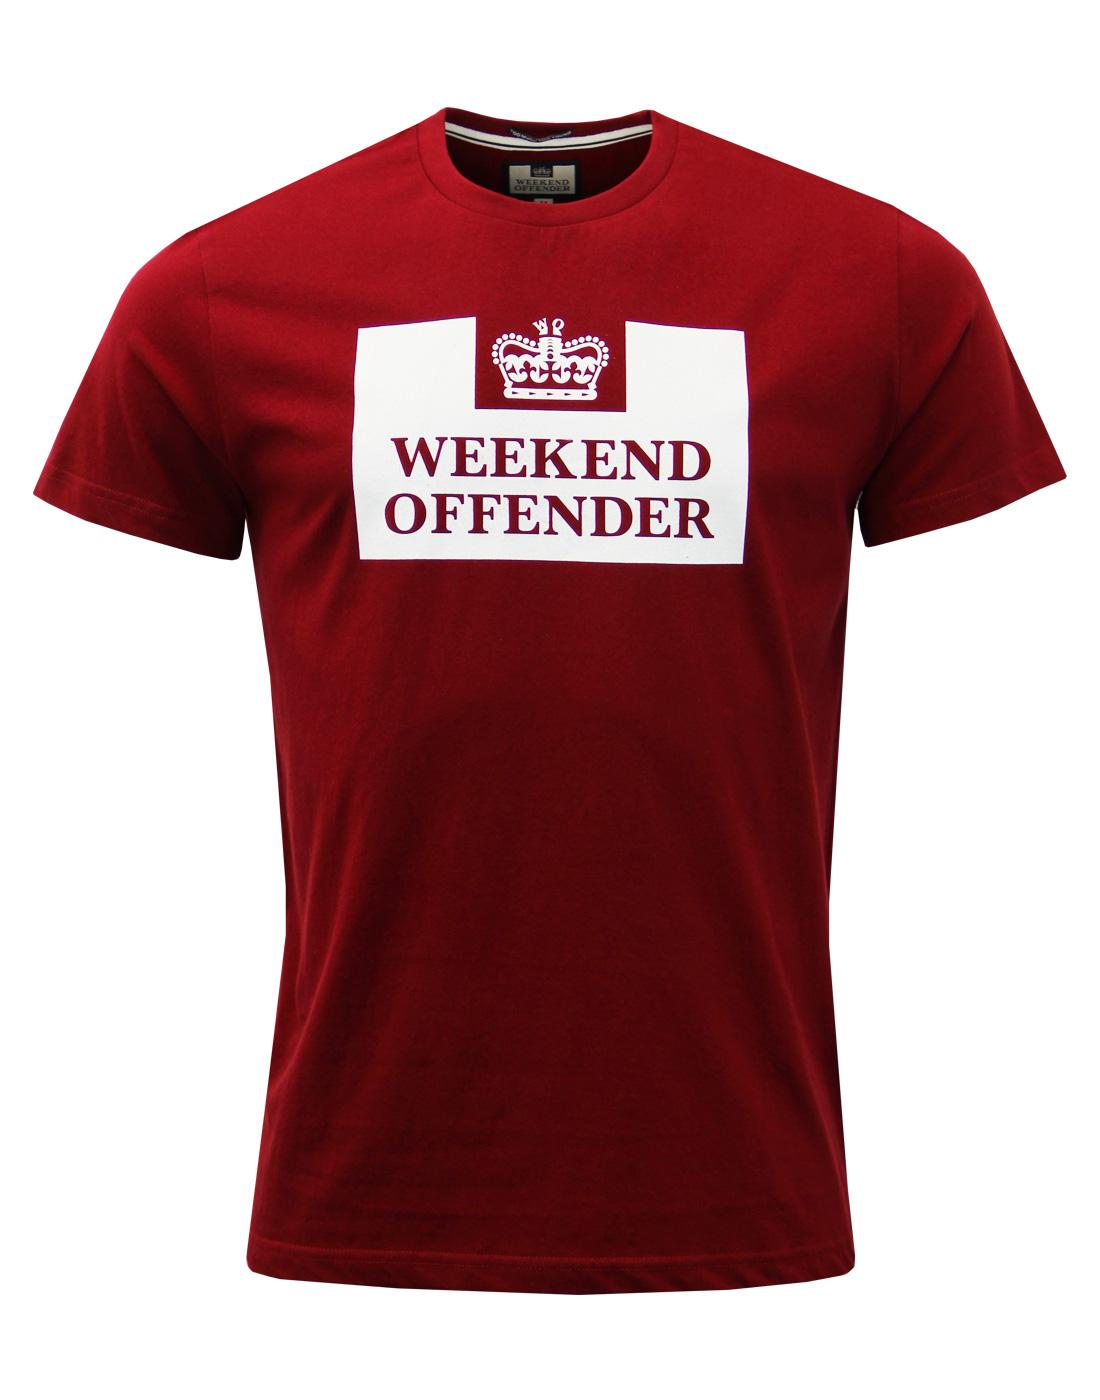 WEEKEND OFFENDER Retro Mod Casuals Prison Tee (GR)